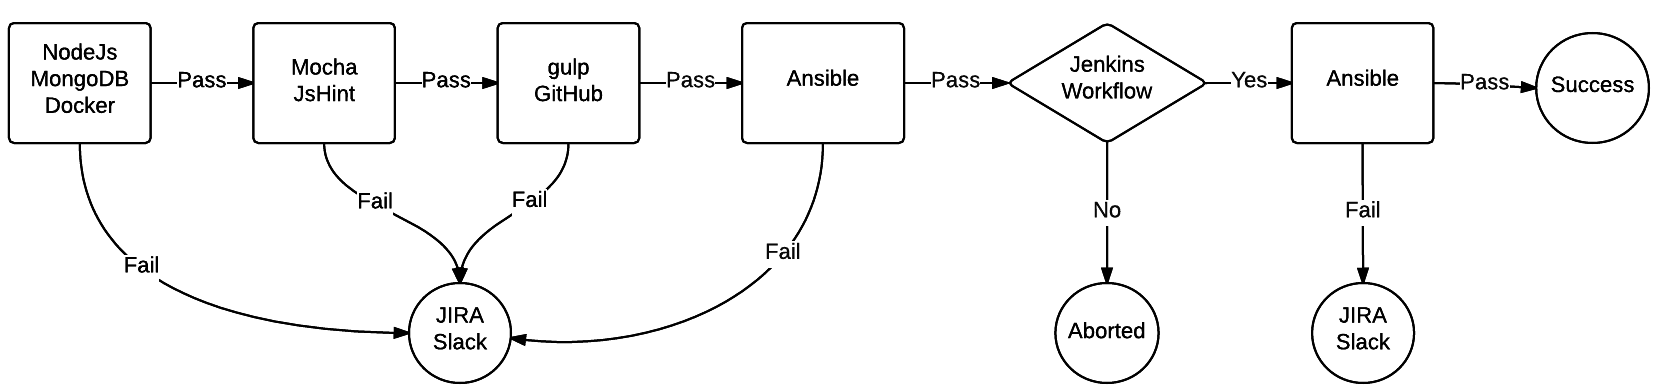 Figure 2 - Deployment Pipeline Tools (Replacing each stage with the appropriate tool)